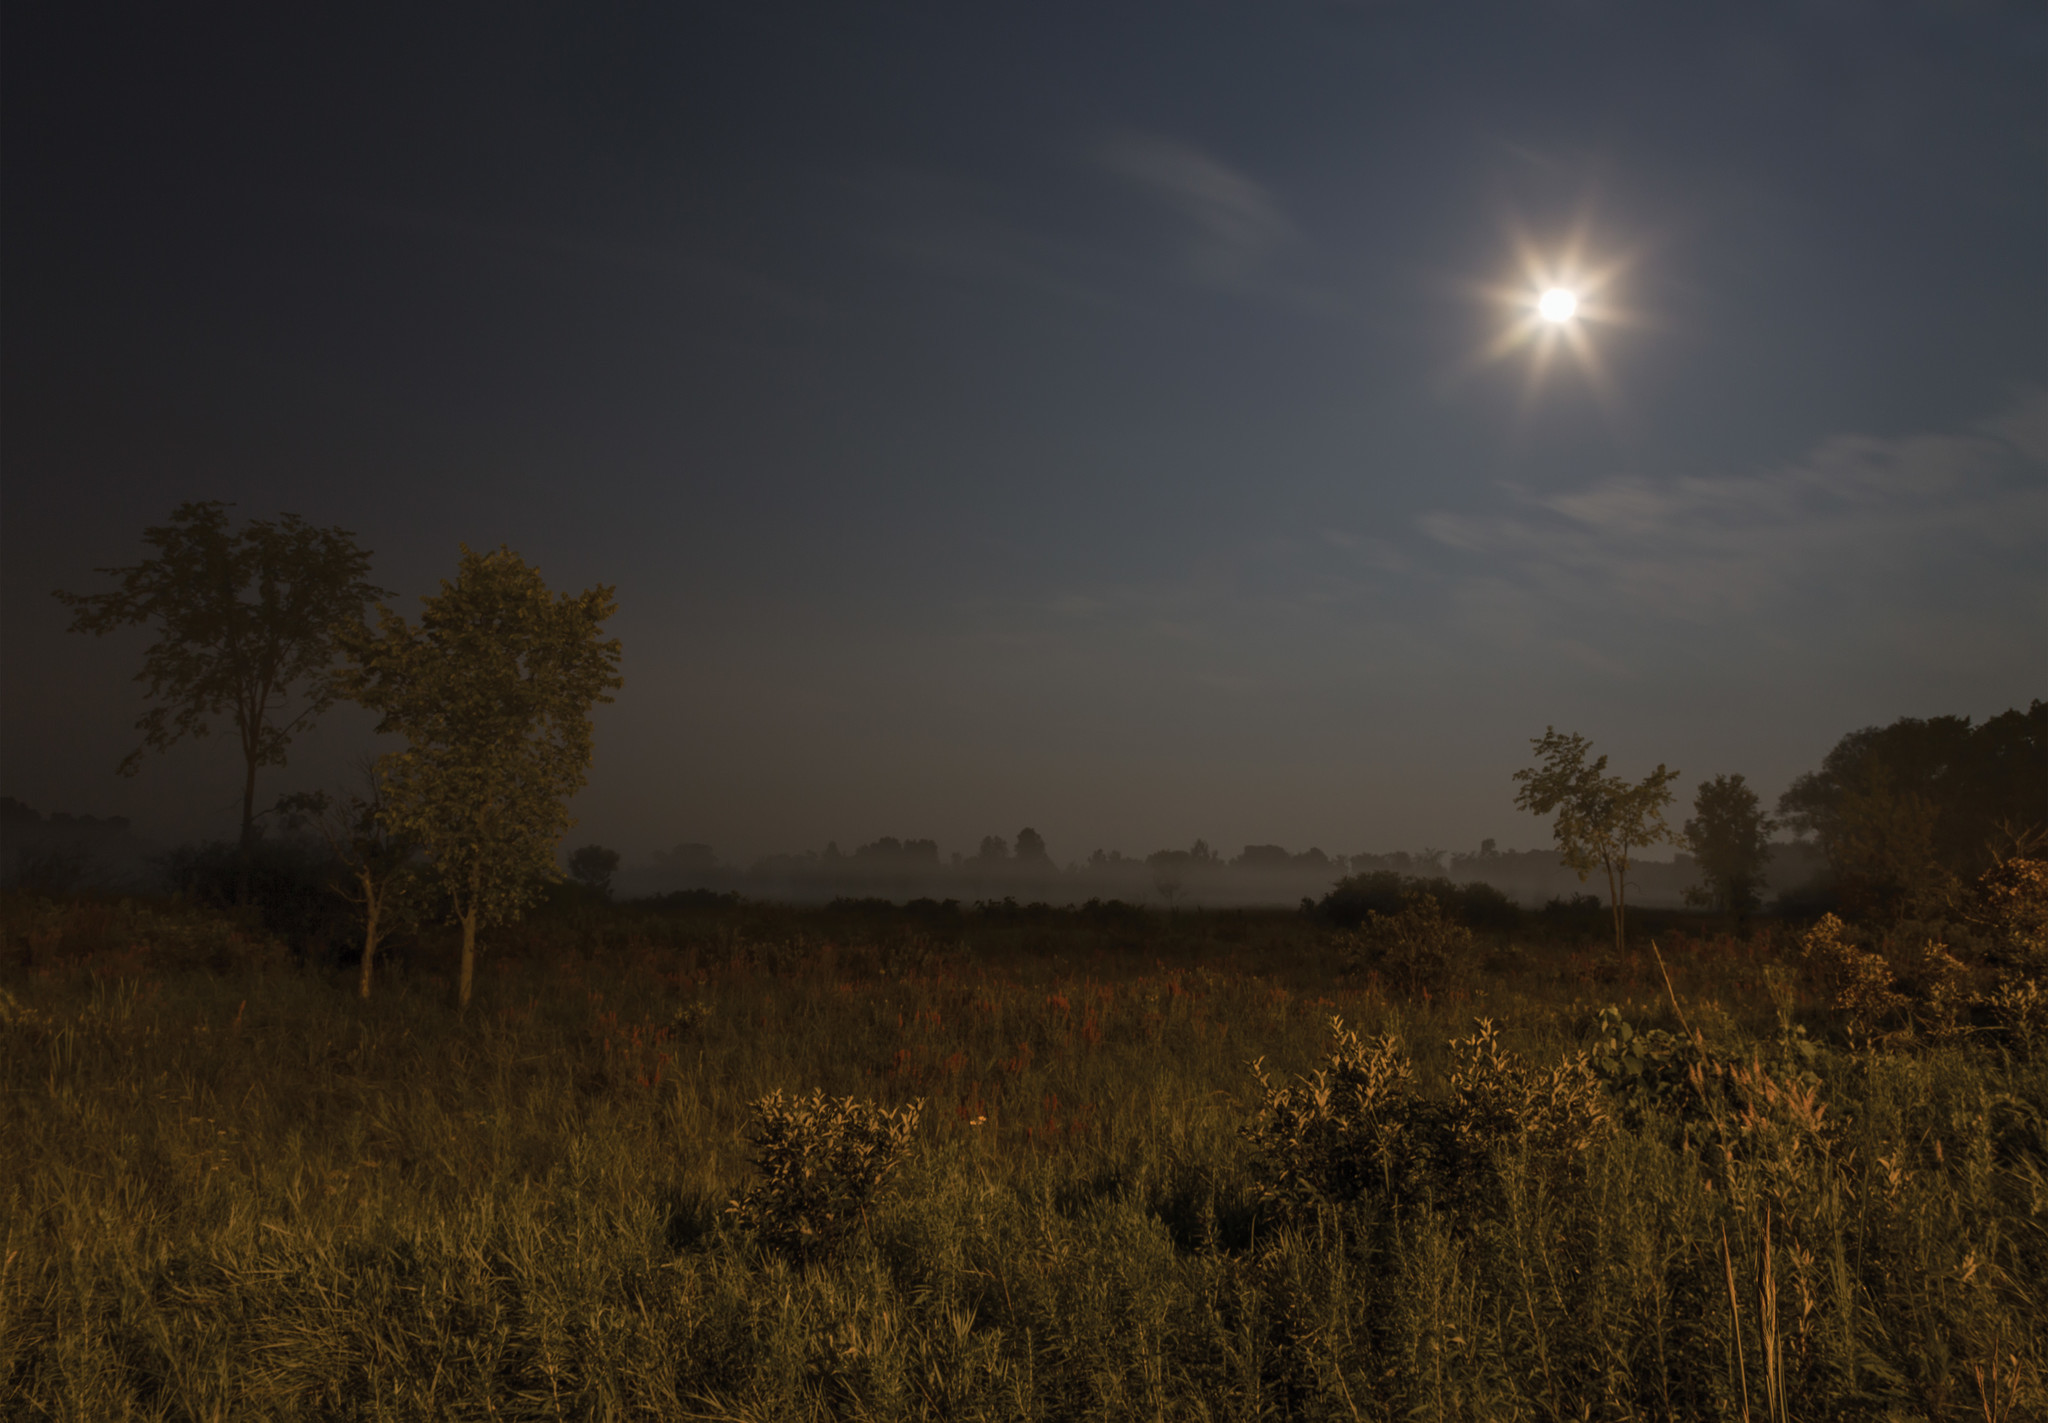 """""""St. Clair County, Michigan,"""" from Jeanine Michna-Bales' """"In Through Darkness to Light: Photographs Along the Underground Railroad."""""""